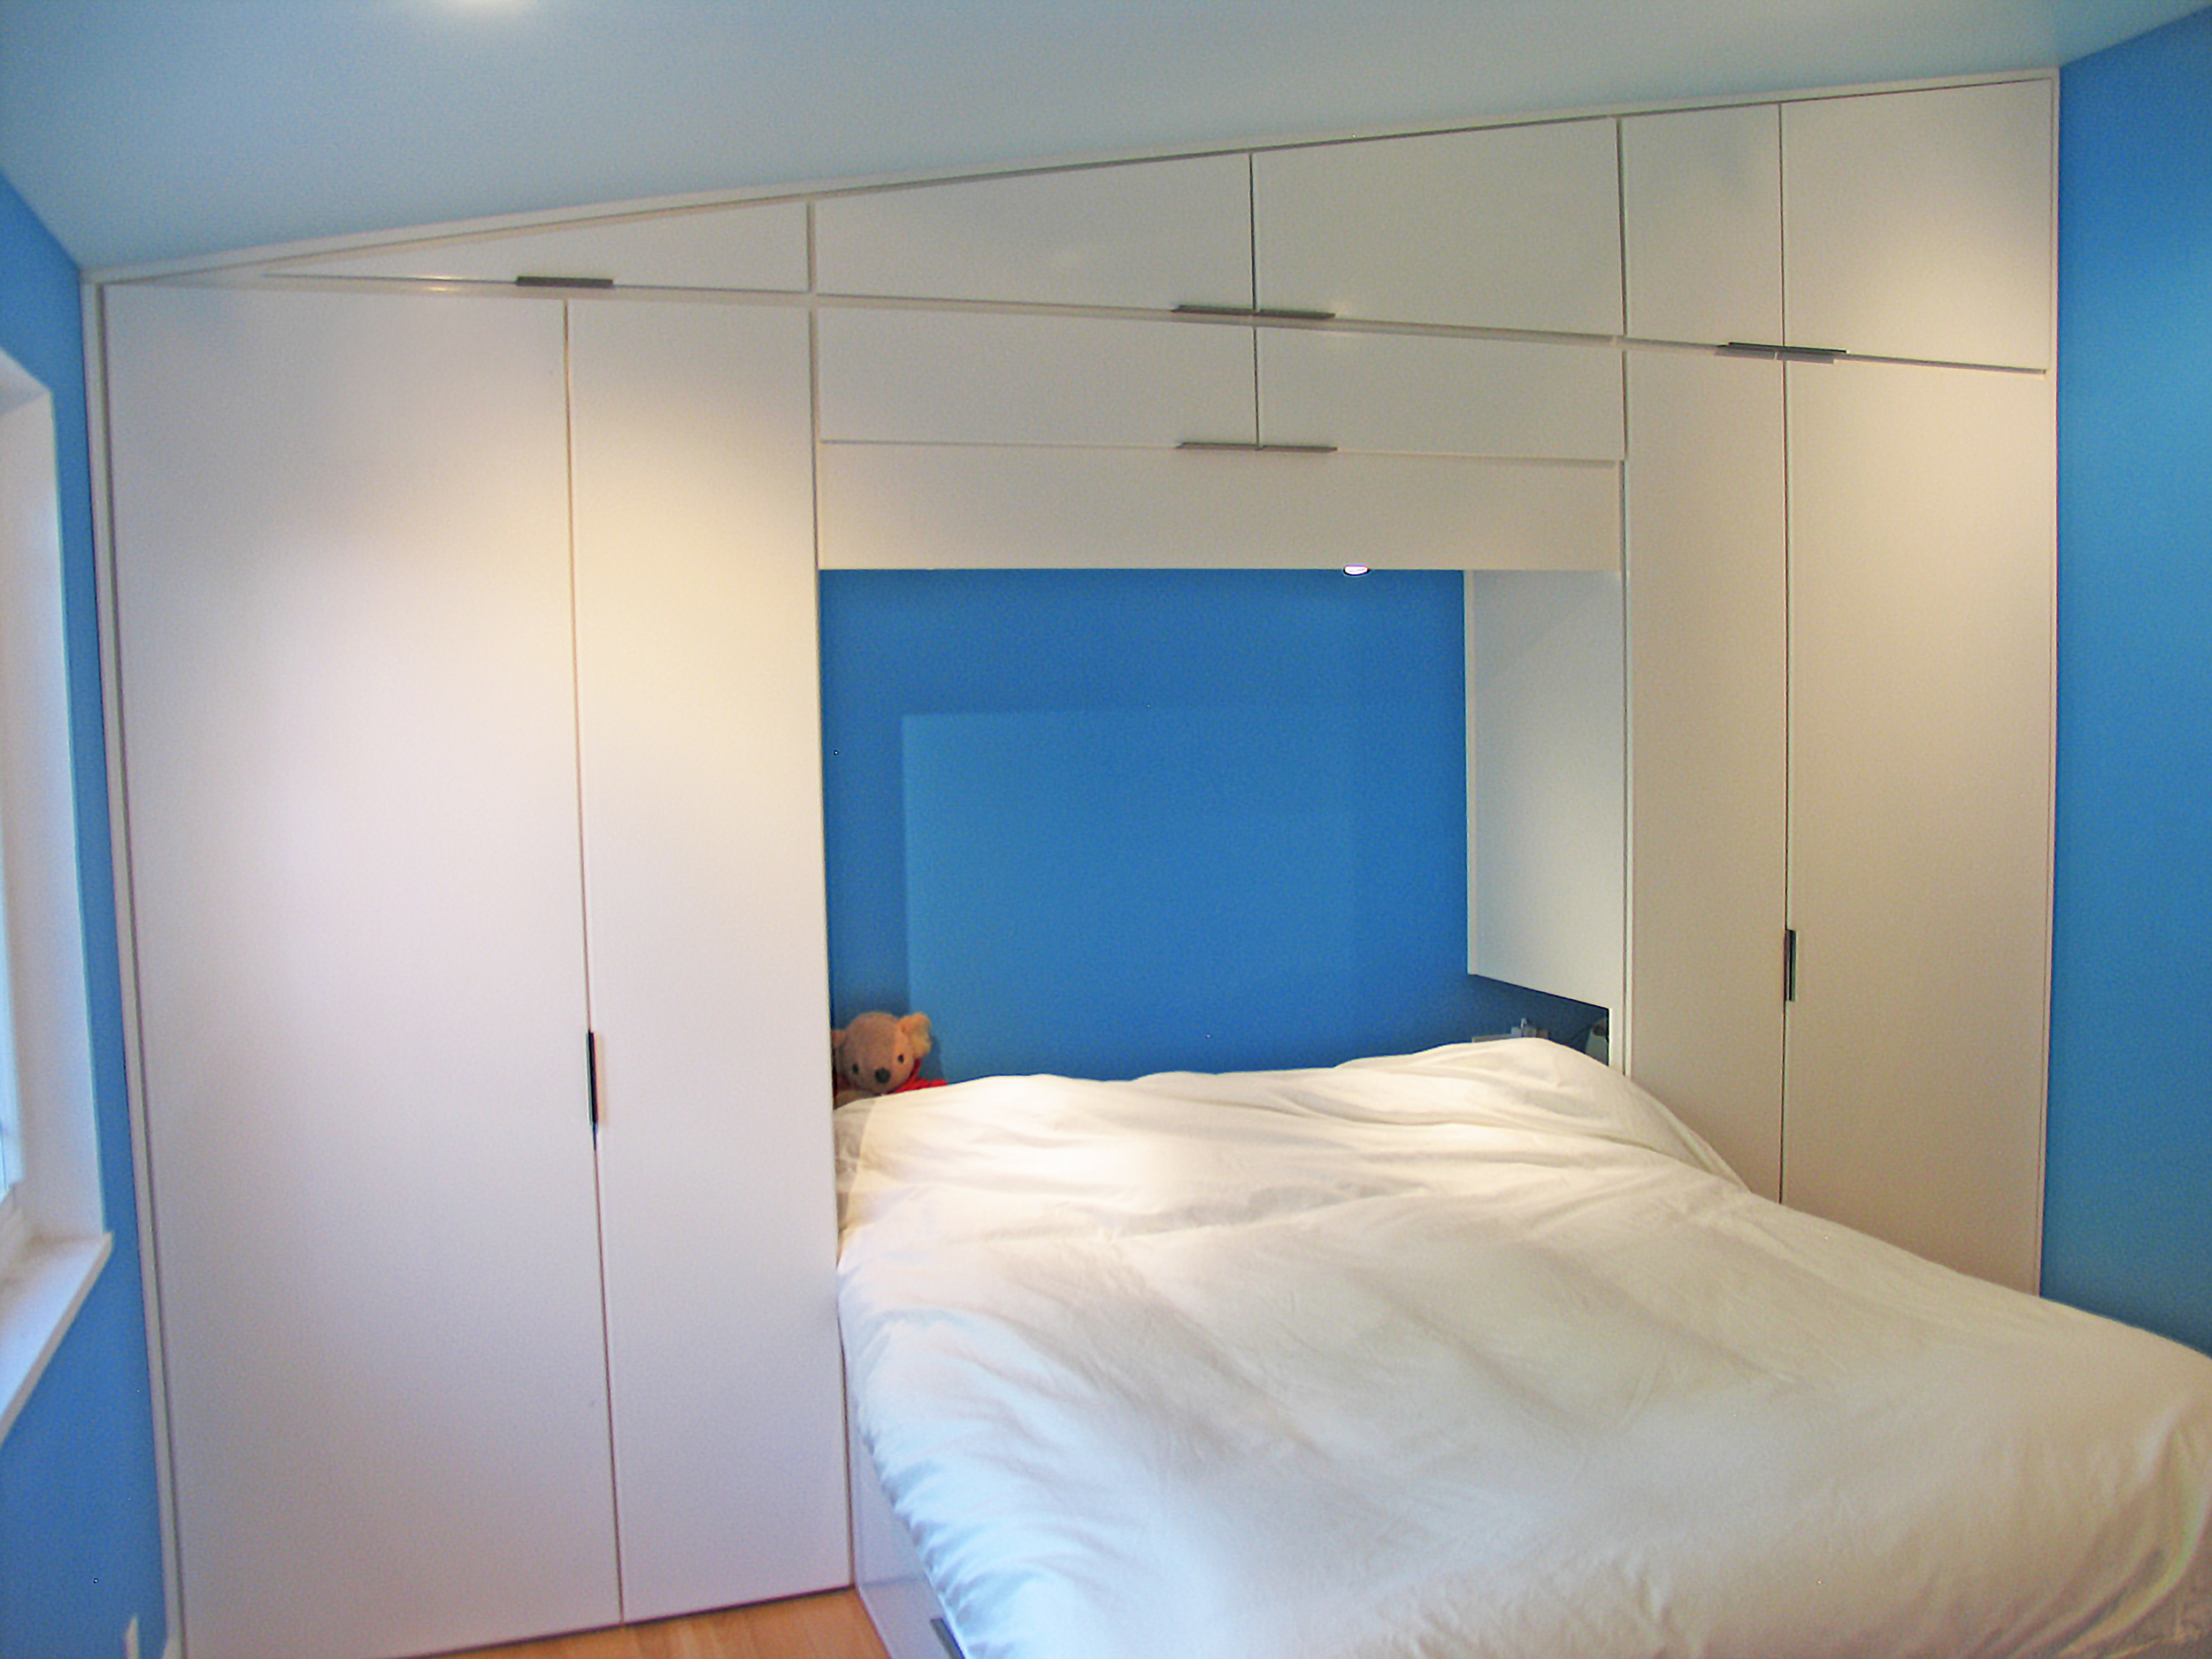 Built-in bedroom closets and bed